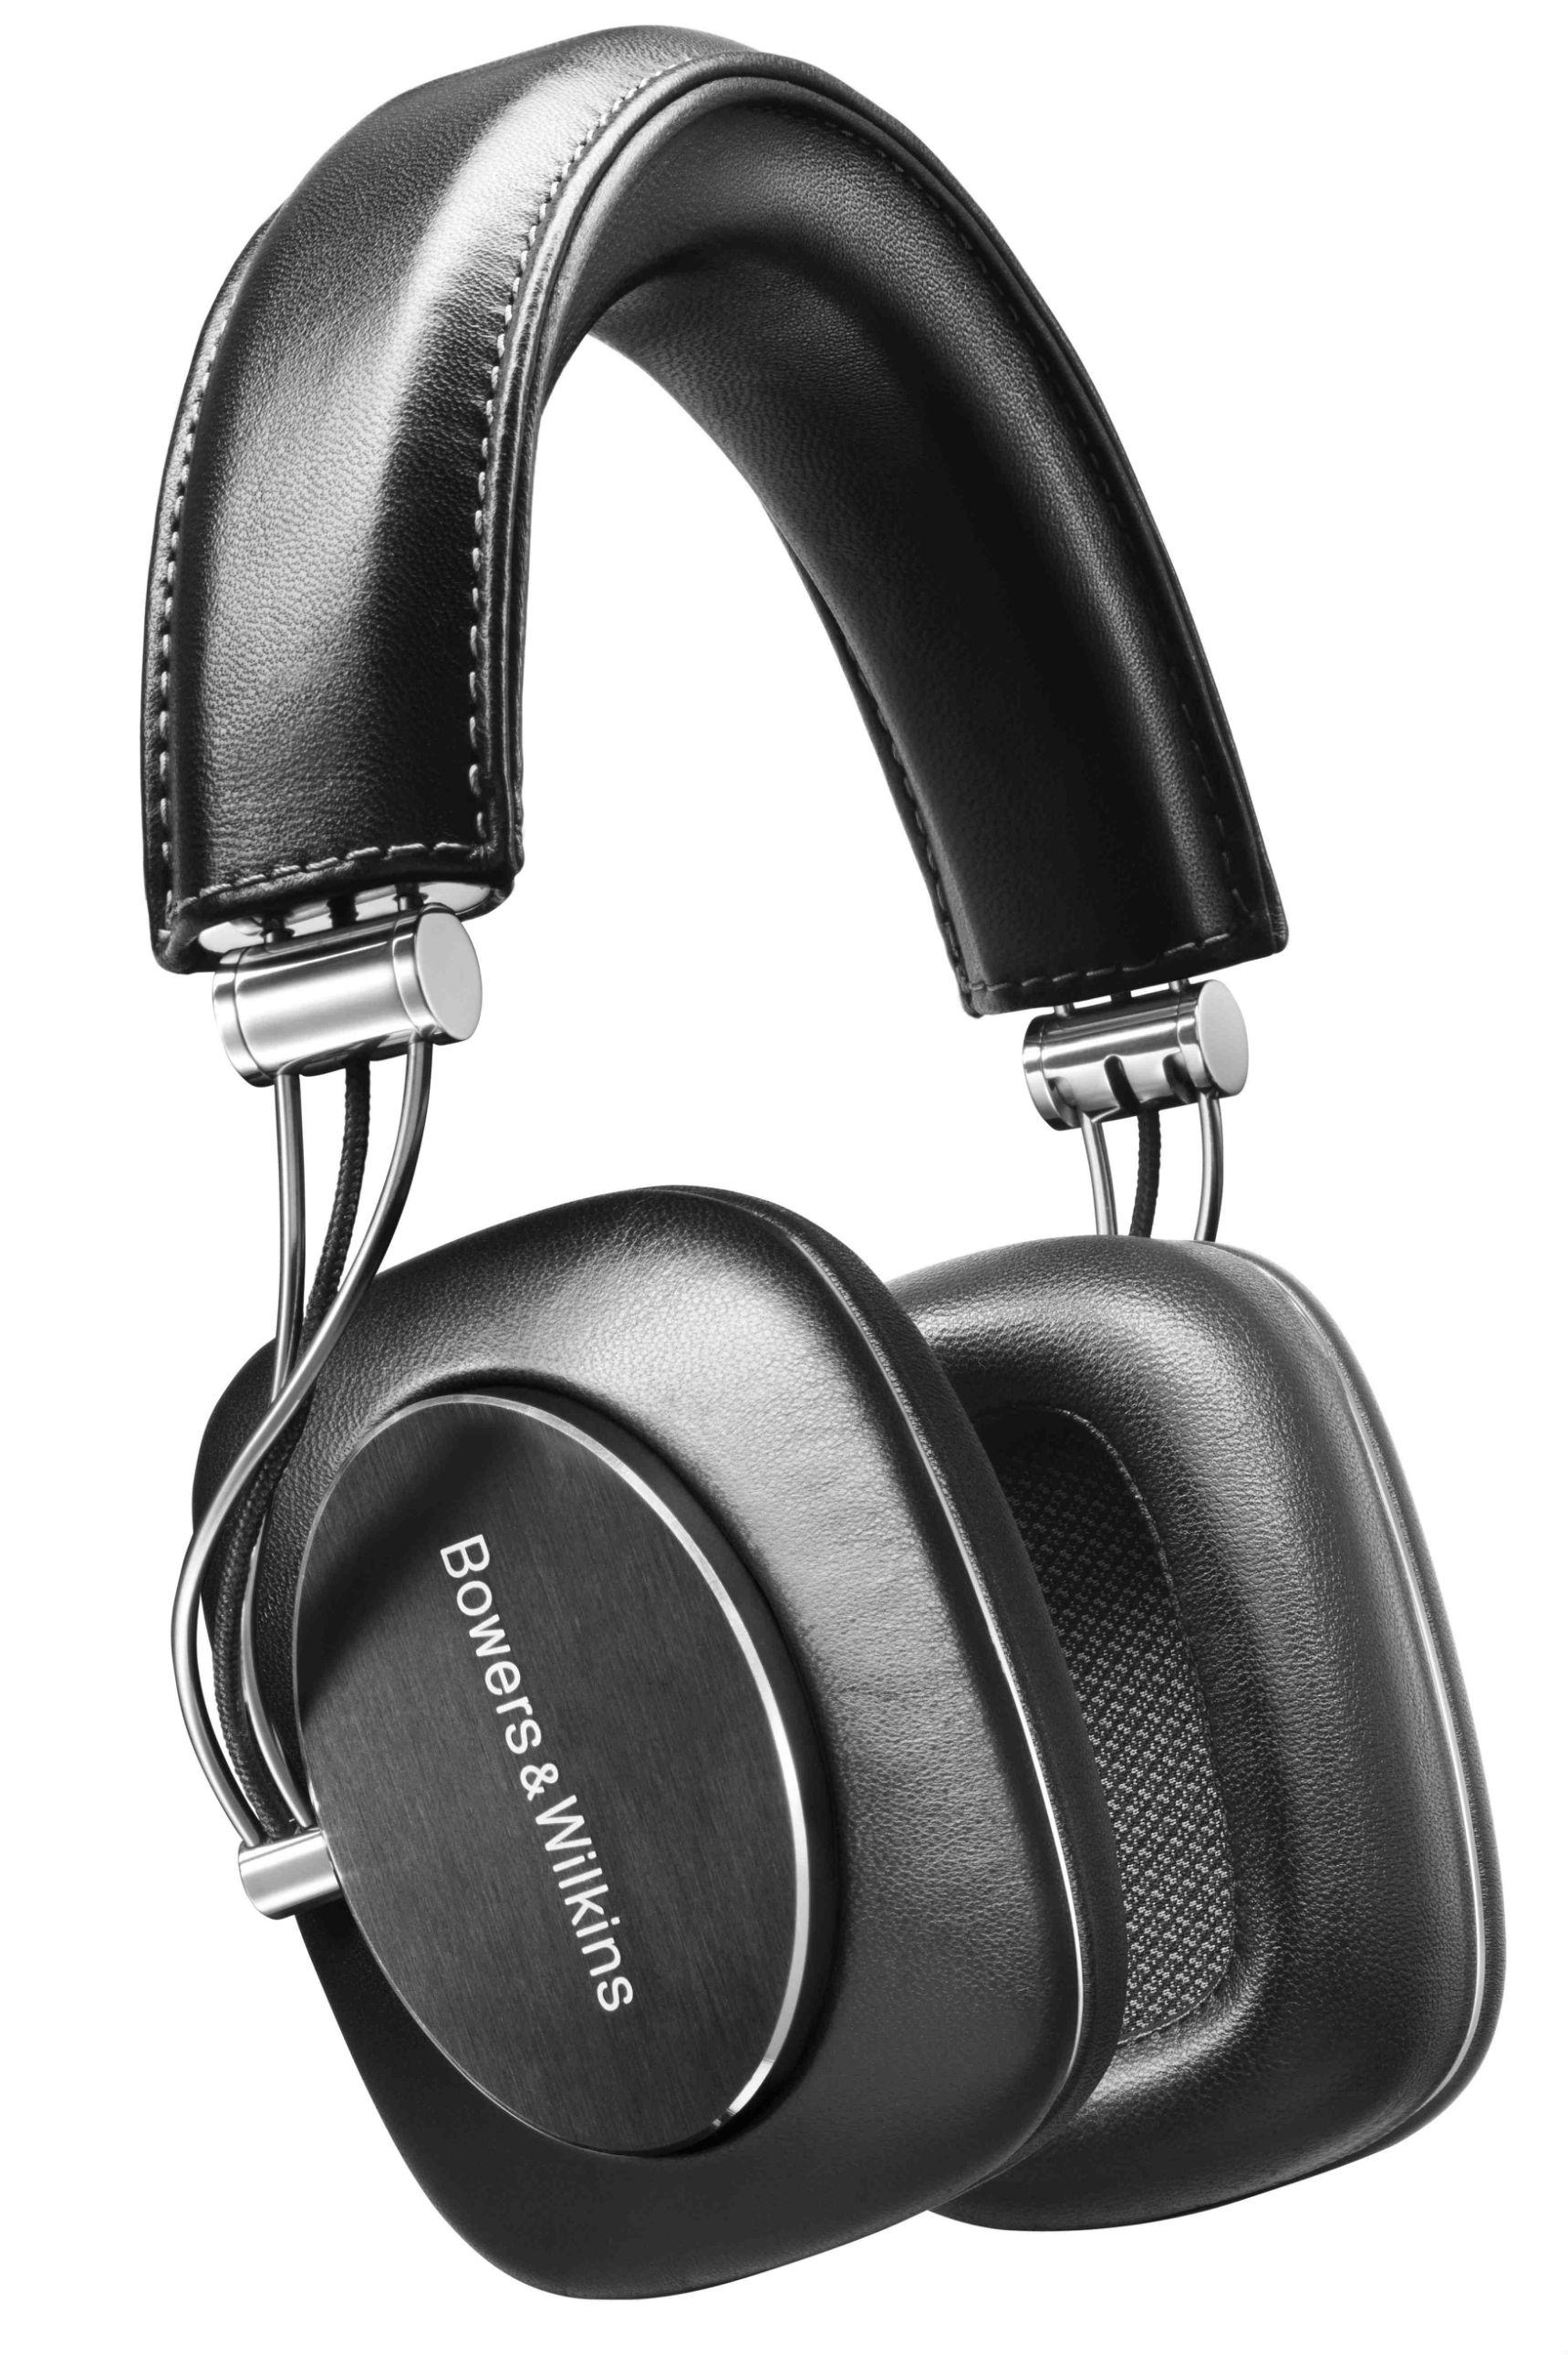 bowers and wilkins announces new p7 over ear headphones. Black Bedroom Furniture Sets. Home Design Ideas